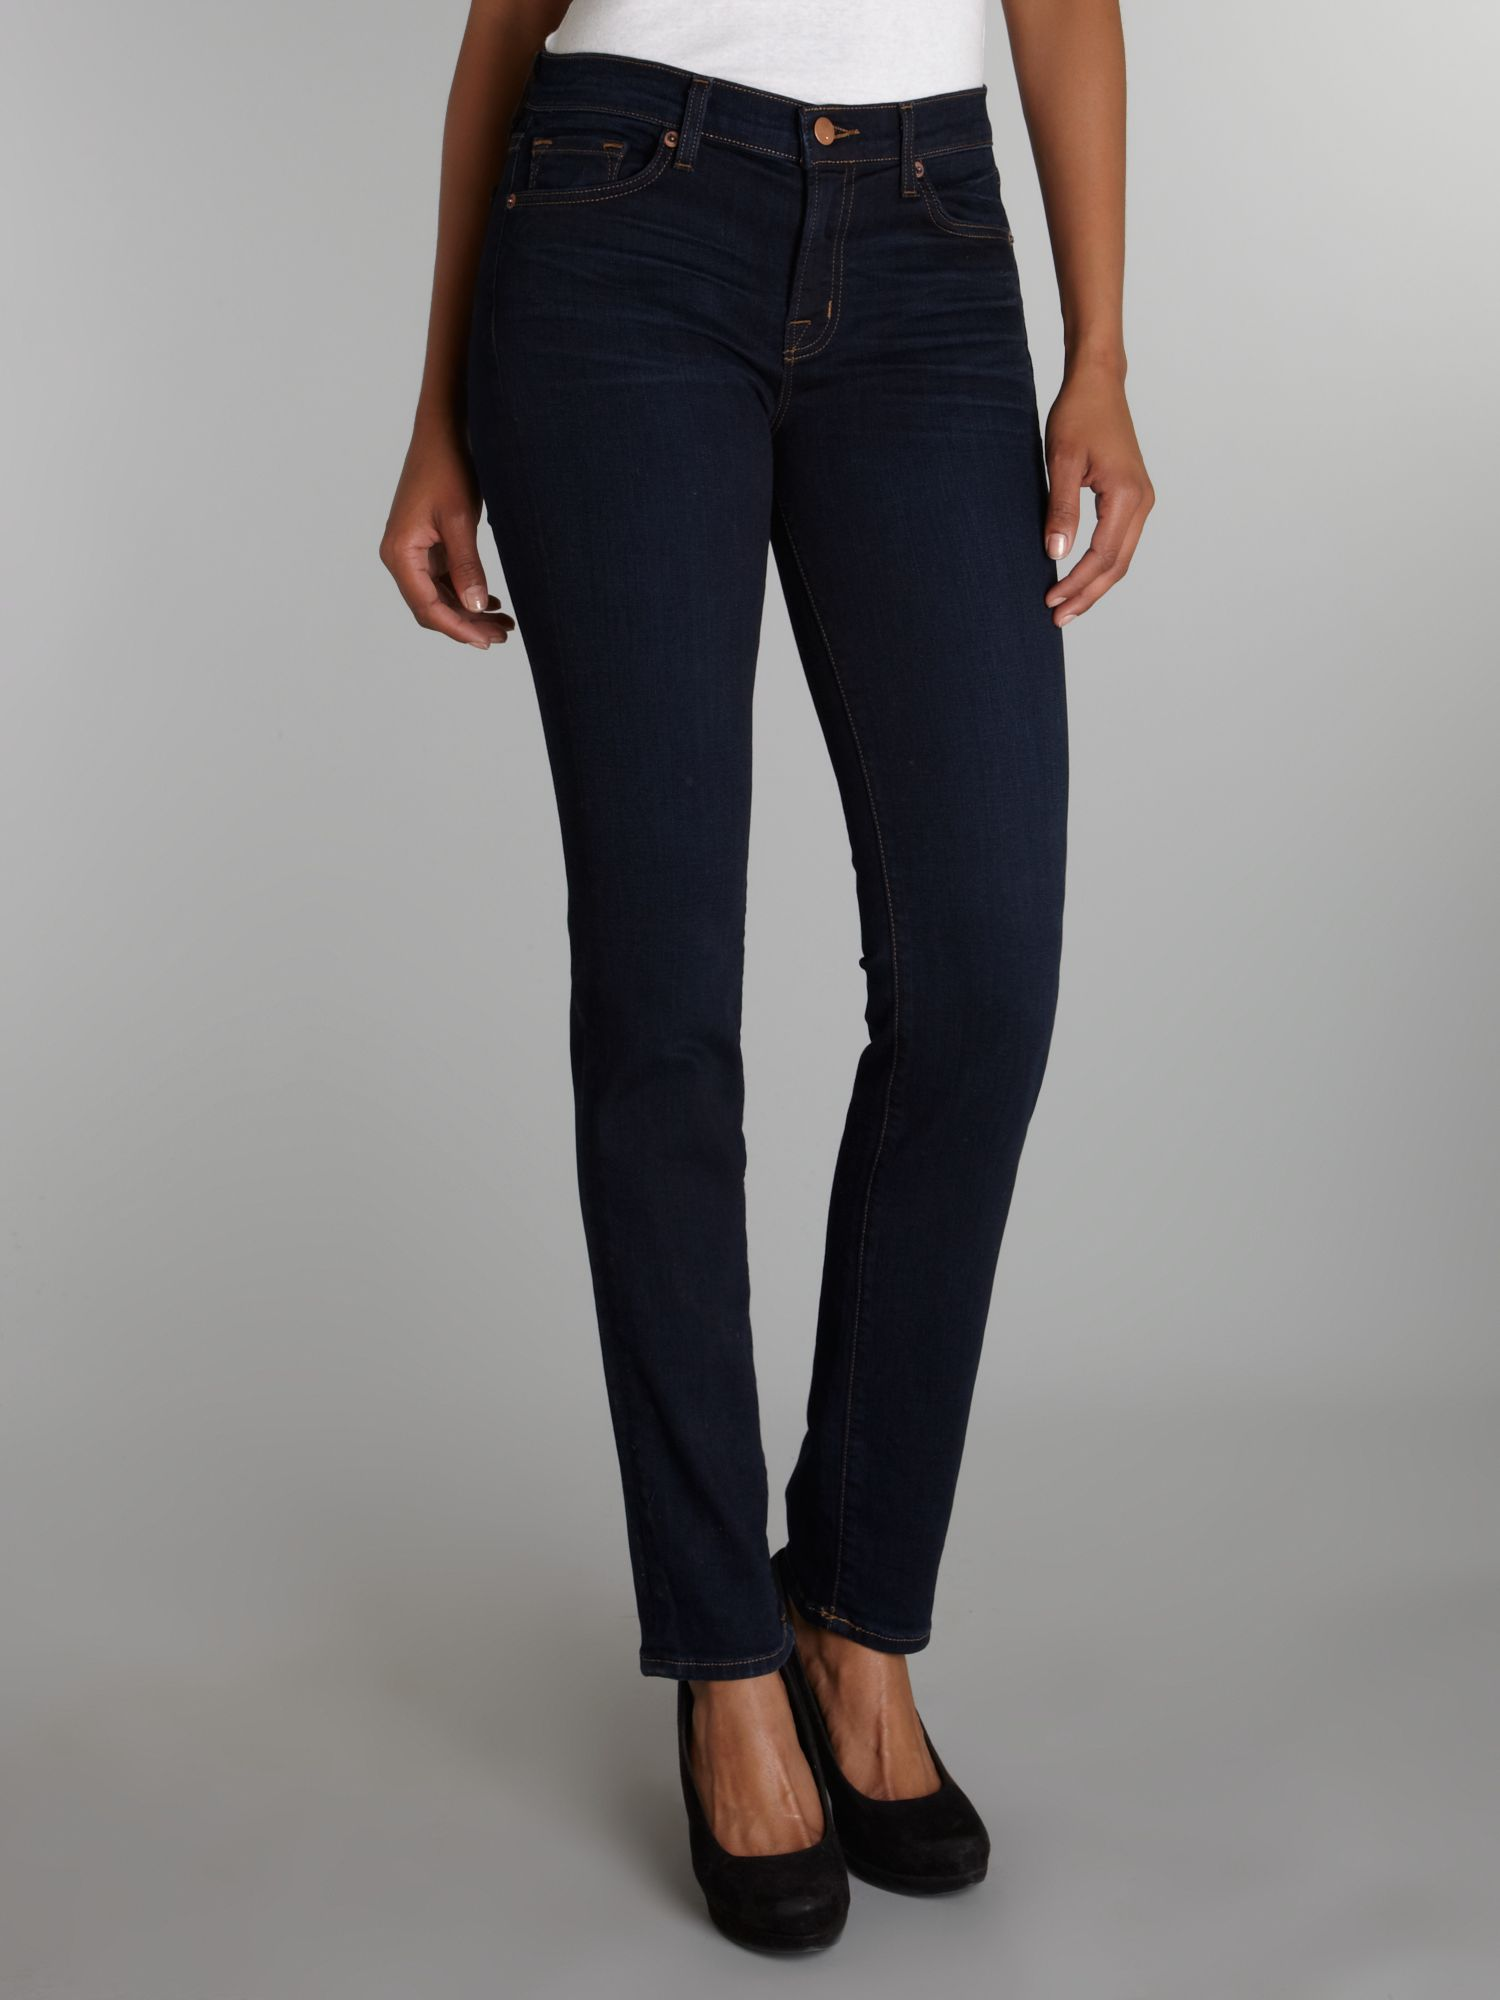 8112 pencil leg jeans in Ignite